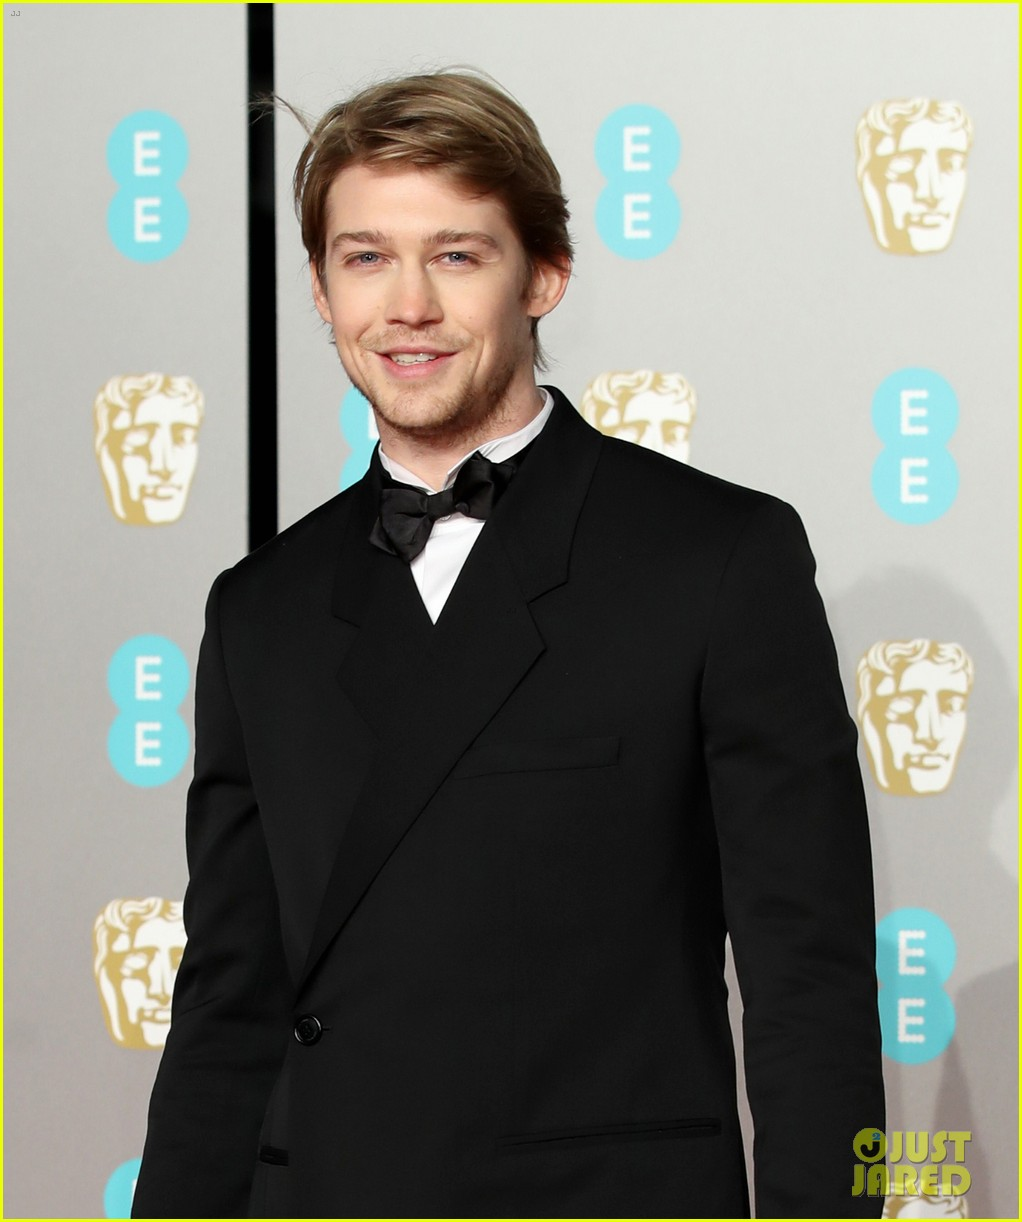 The Favourite's Joe Alwyn Goes Solo At BAFTAs 2019: Photo